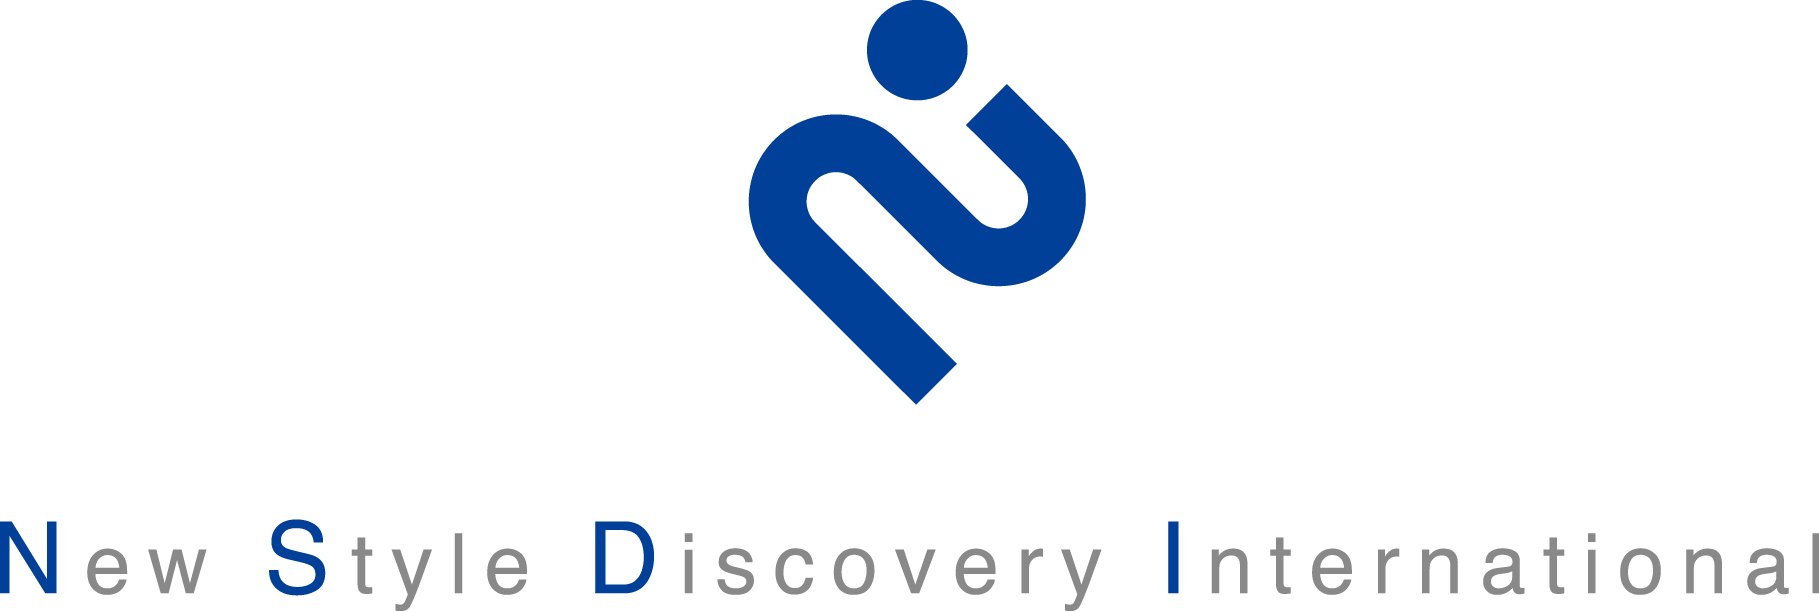 NSDI JAPAN - New Style Discovery Int'l